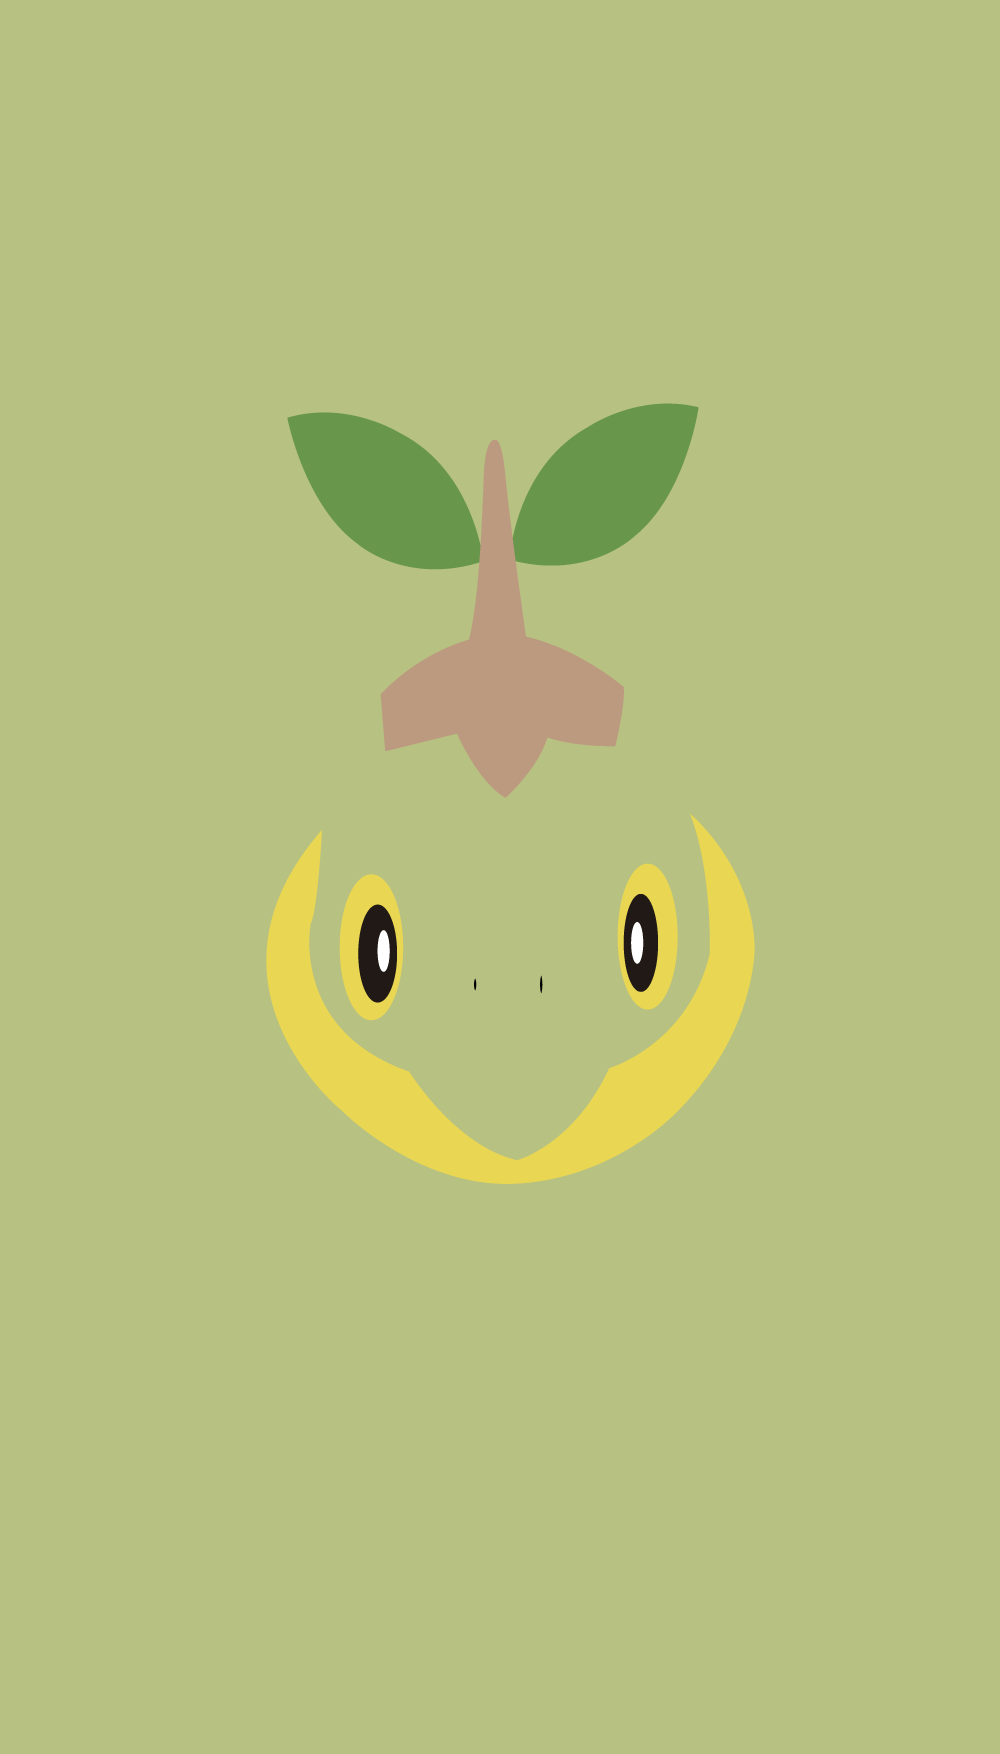 Pokemon Wallpaper Turtwig | Jackson's Room | Pinterest | Pokémon ...